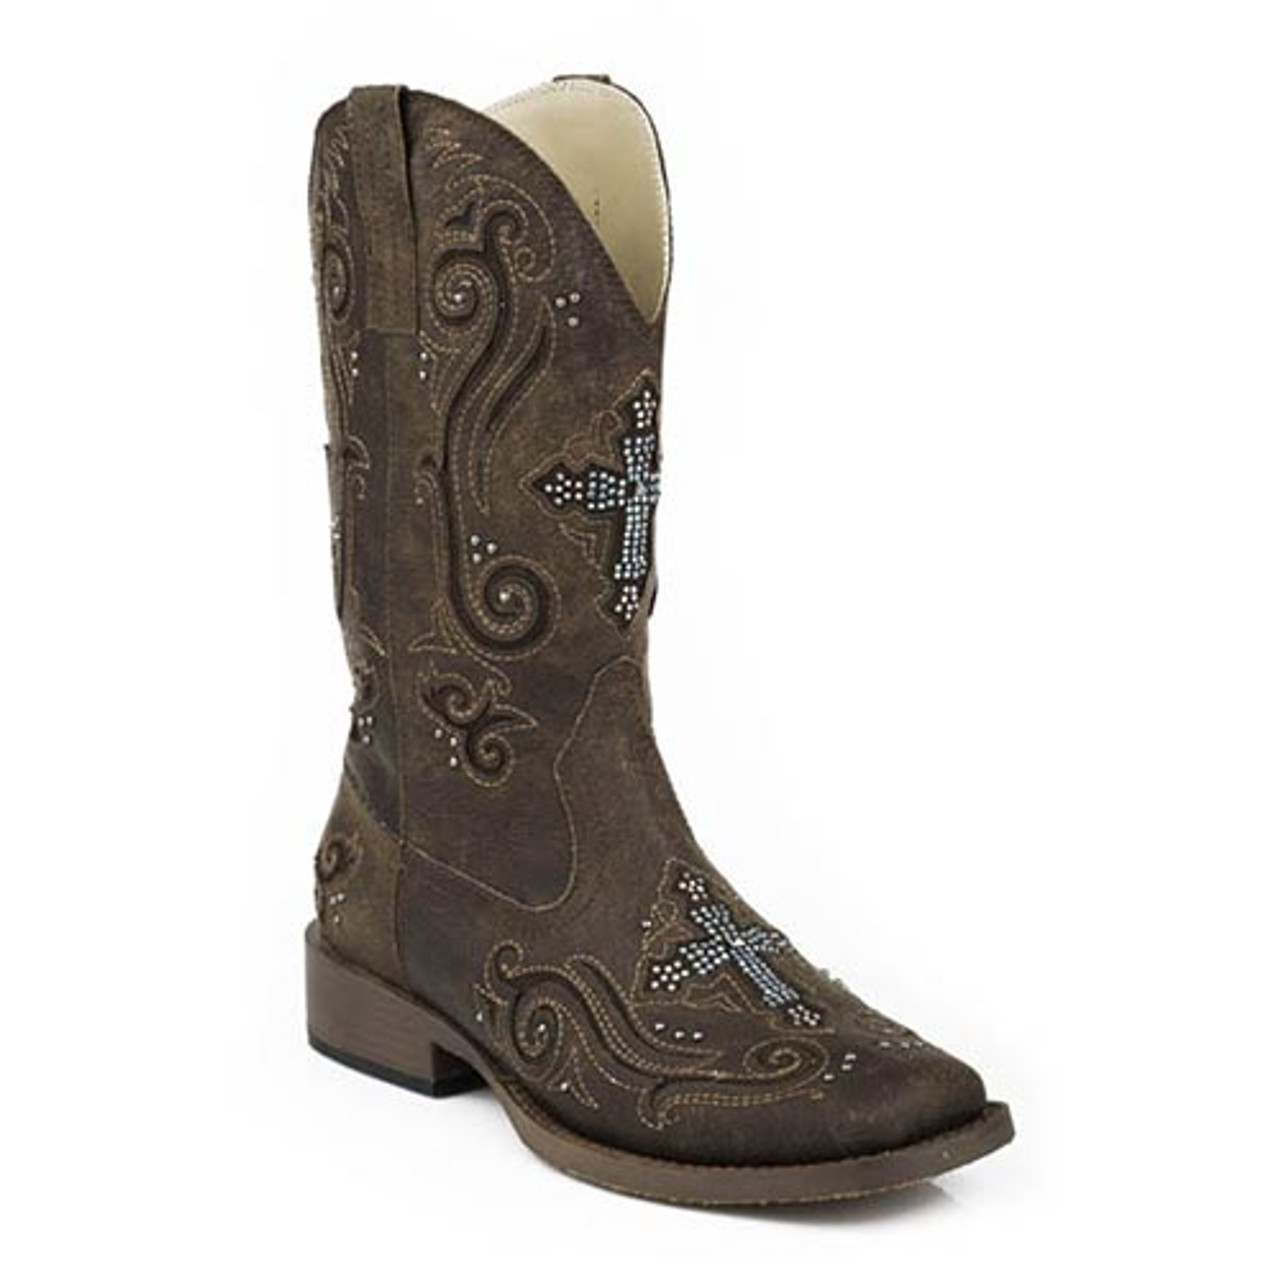 c441958ca95 Roper Women's - Vintage Crystal Cross Cowgirl Boots - Brown